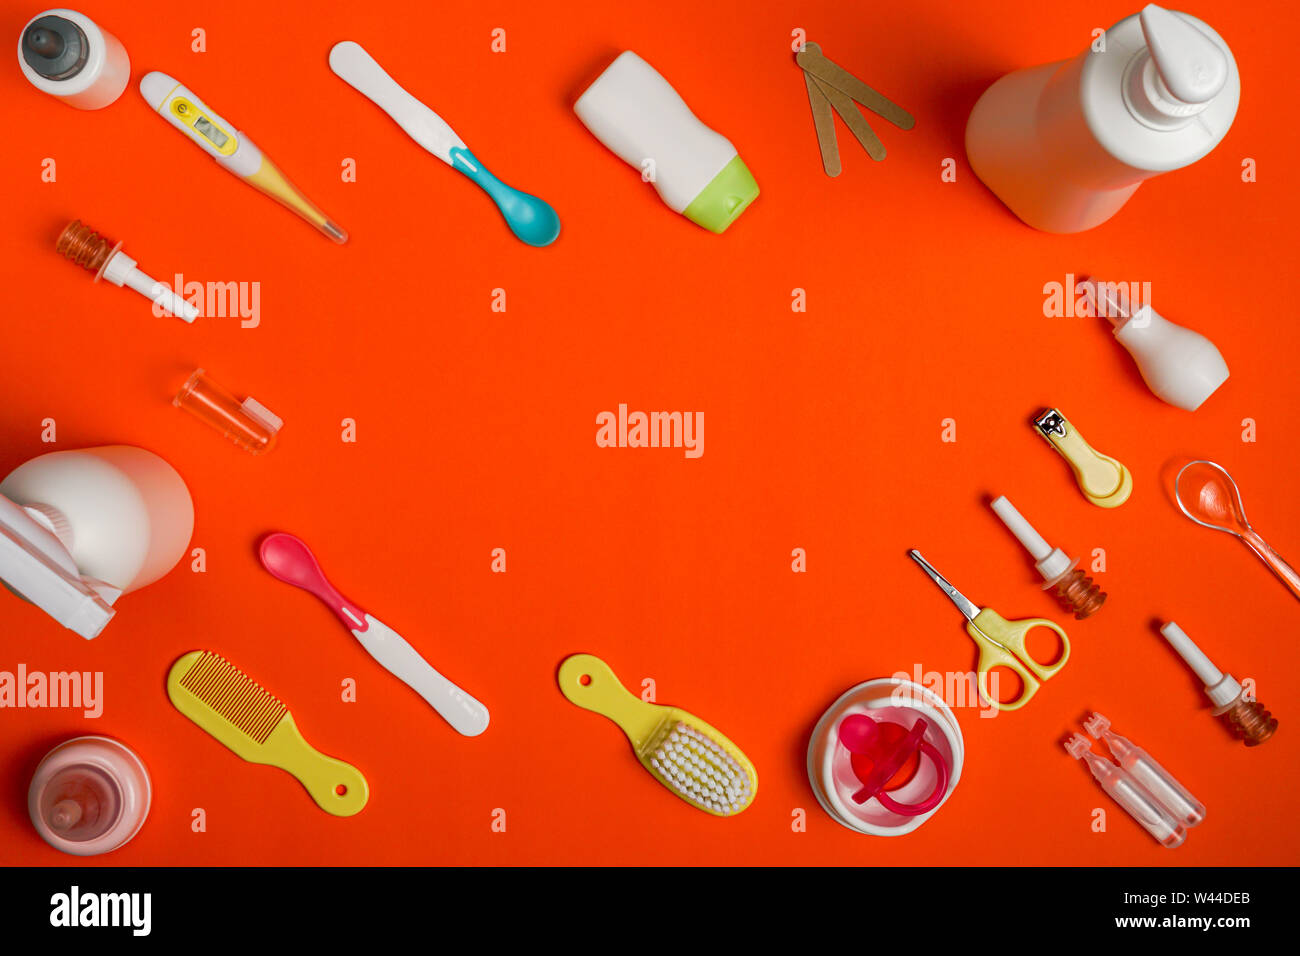 Ampoules Stock Photos & Ampoules Stock Images - Alamy